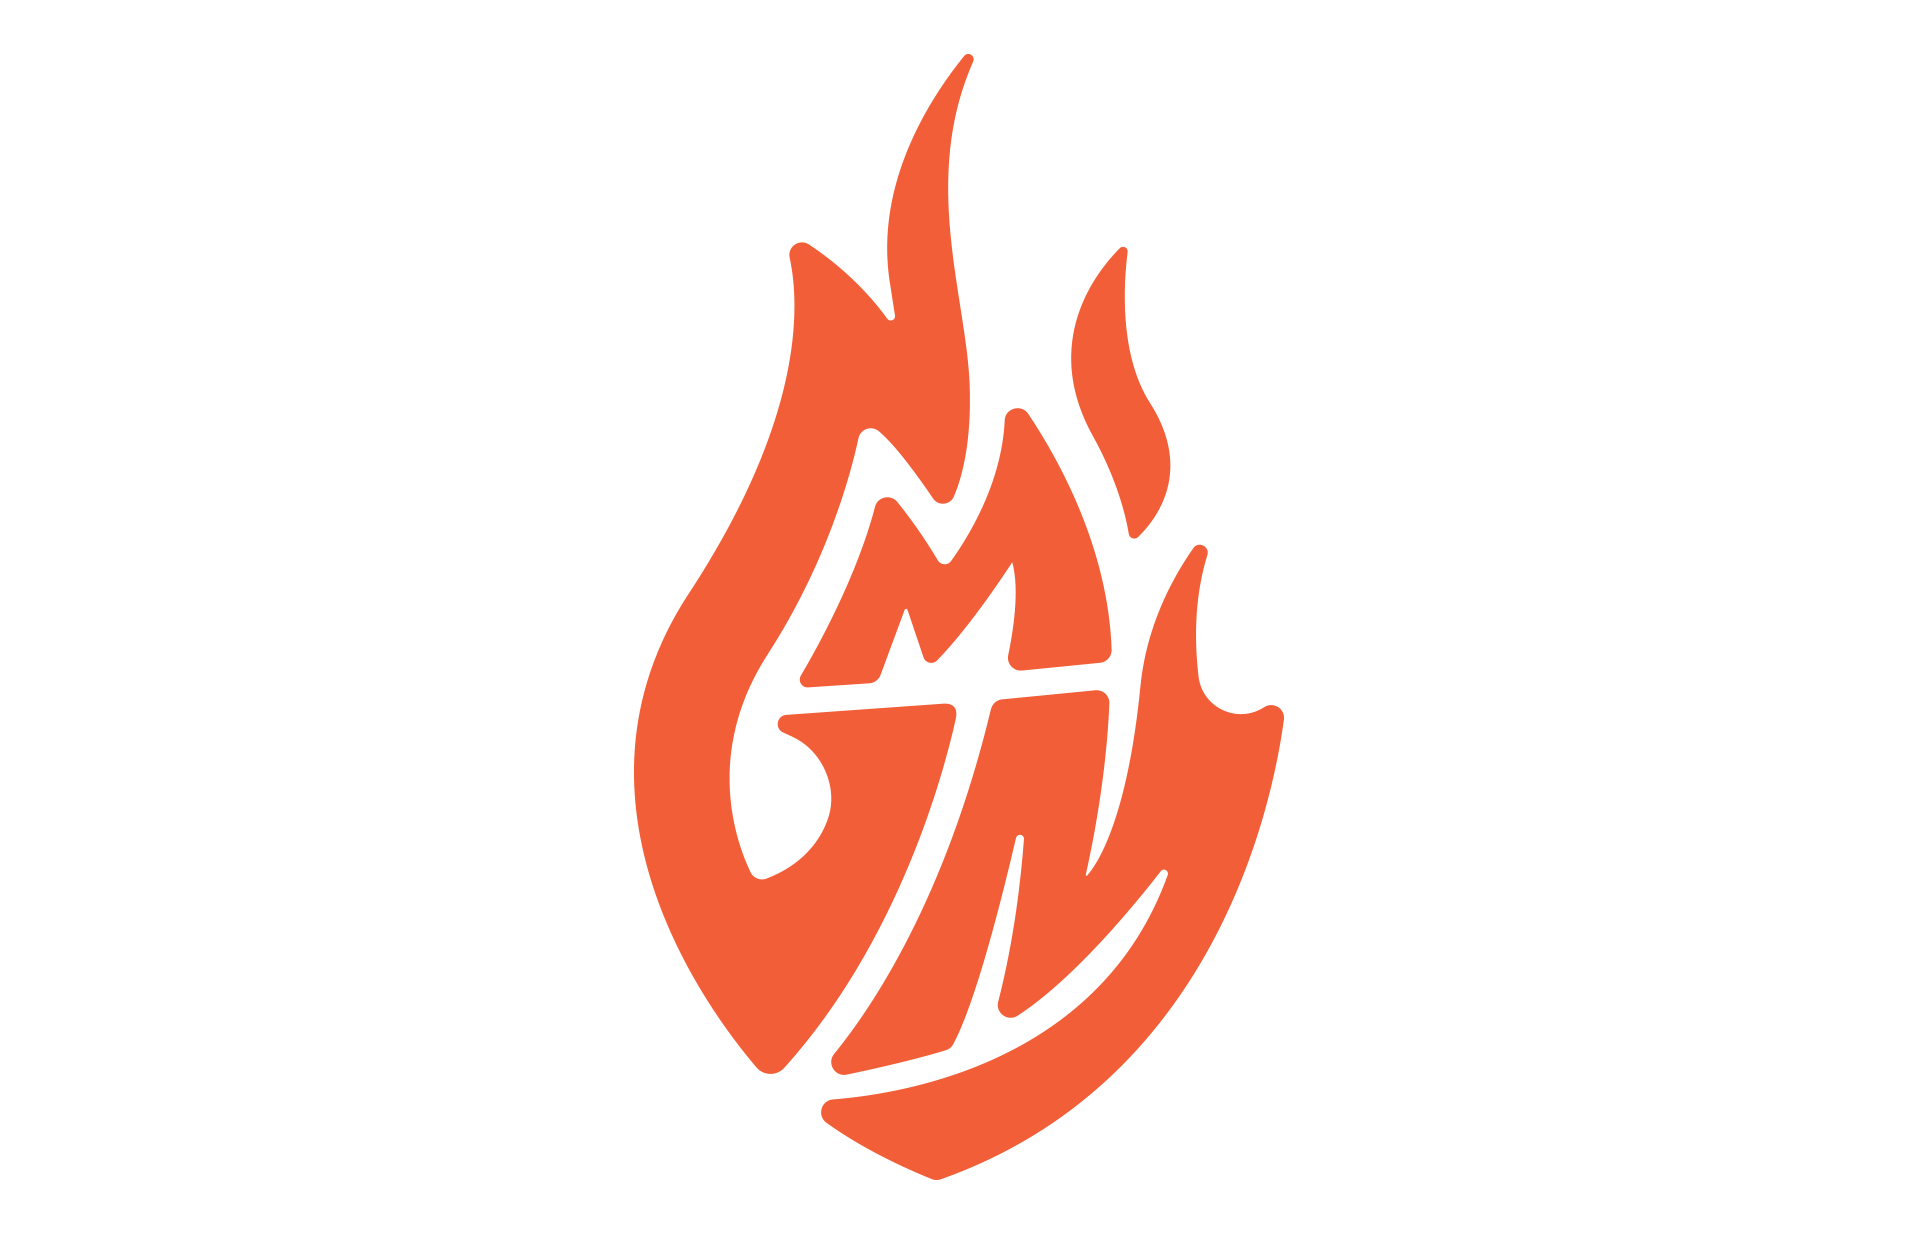 gmm.png